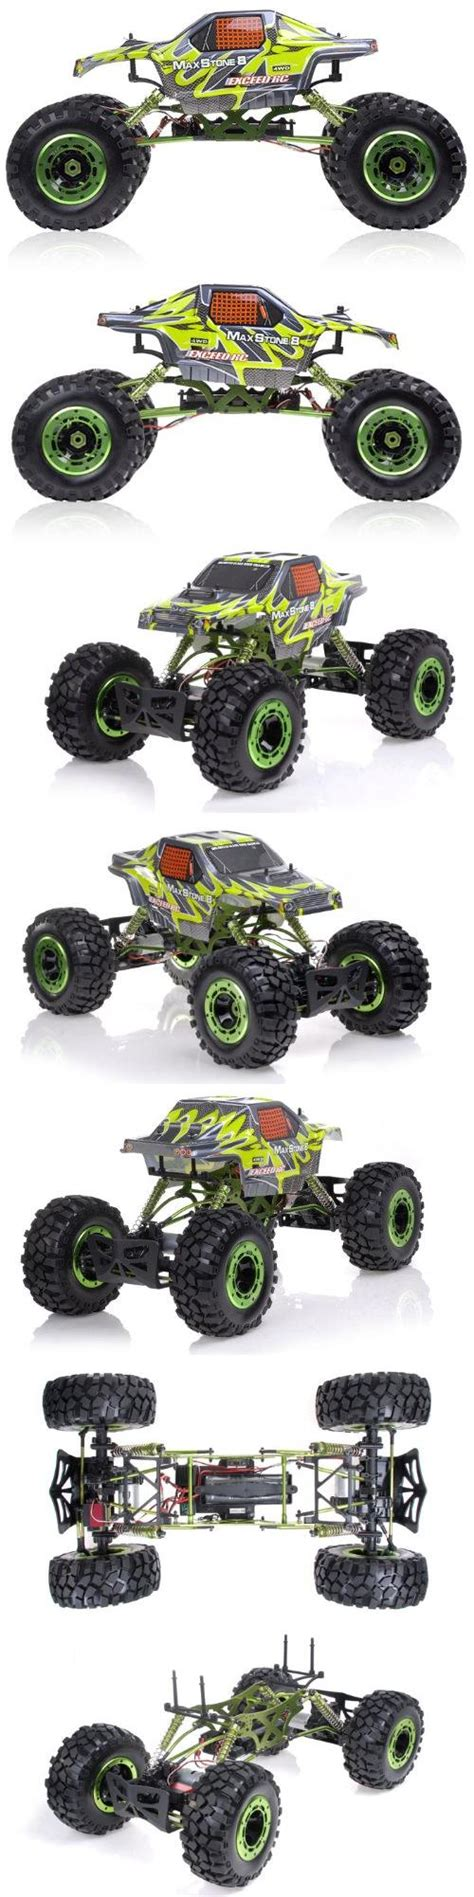 1 8th scale 2 4ghz exceed rc maxstone 4wd powerful 1 8th scale 2 4ghz exceed rc maxstone 4wd powerful